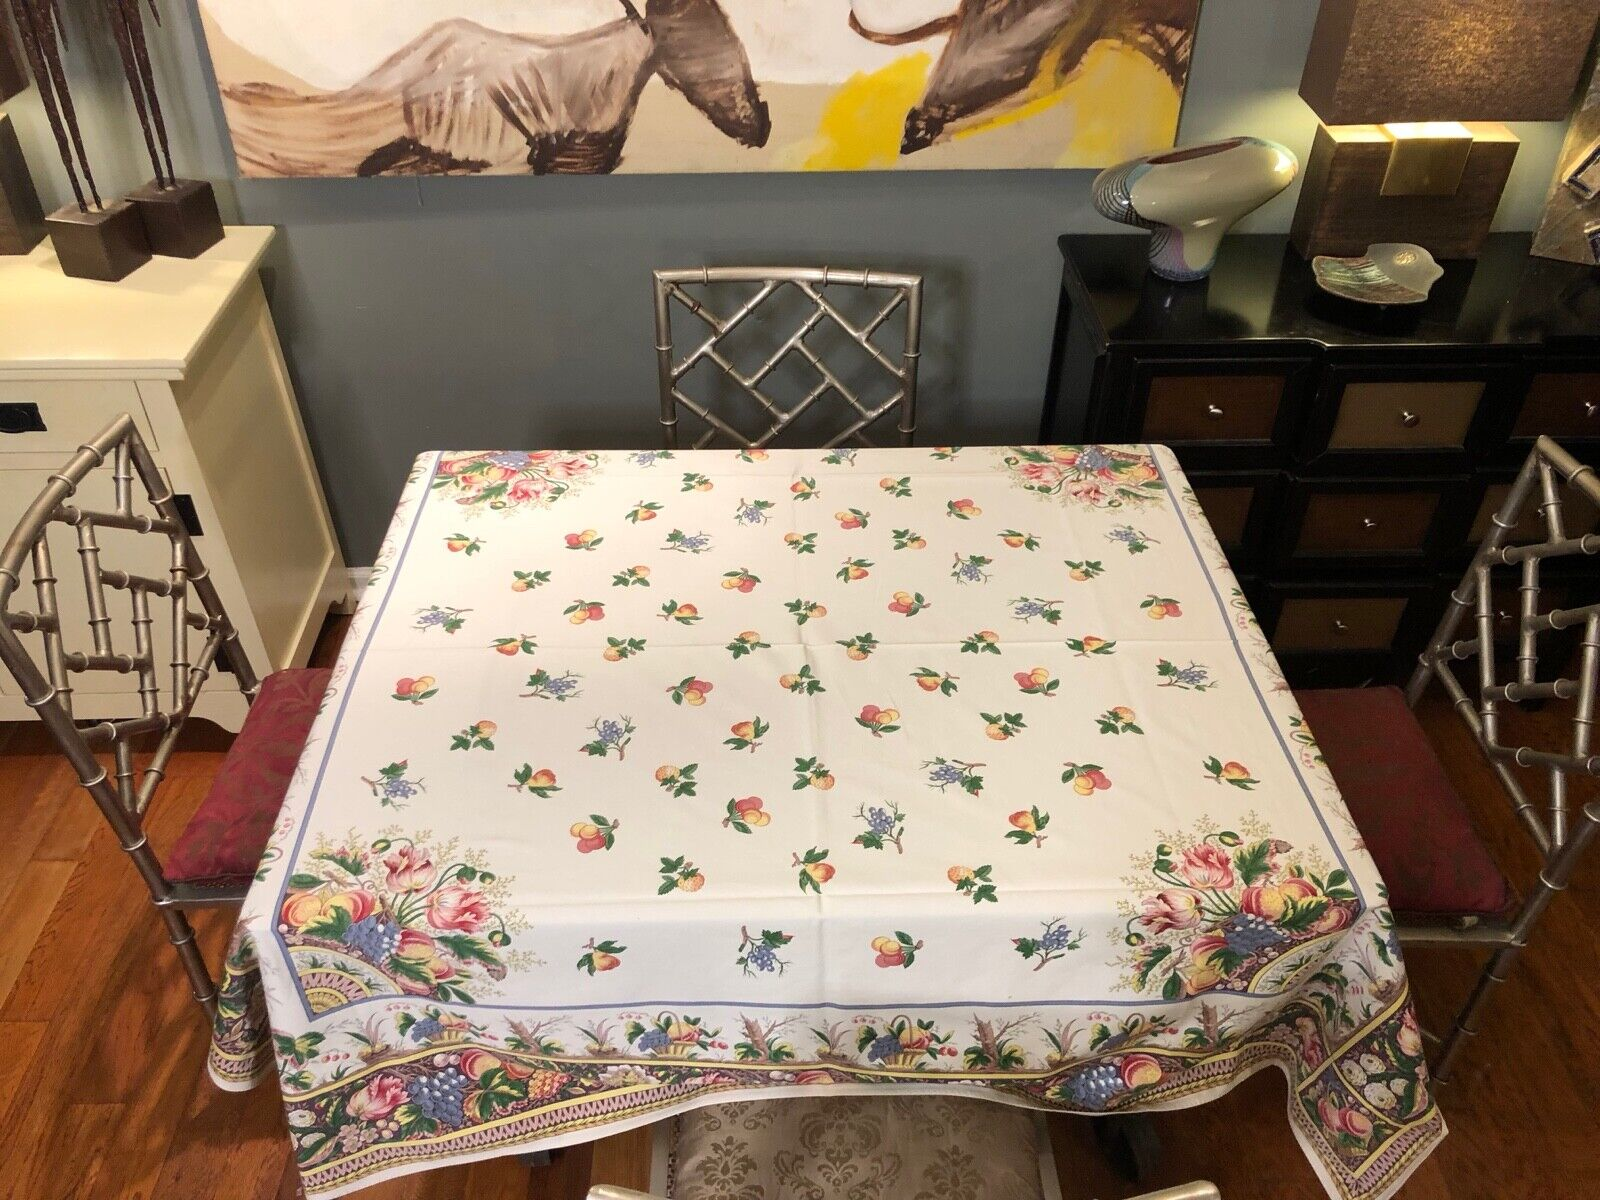 Beauville coton Peach Floral Nappe 64X64 Made in France M.I.E RI BEAUVILLE